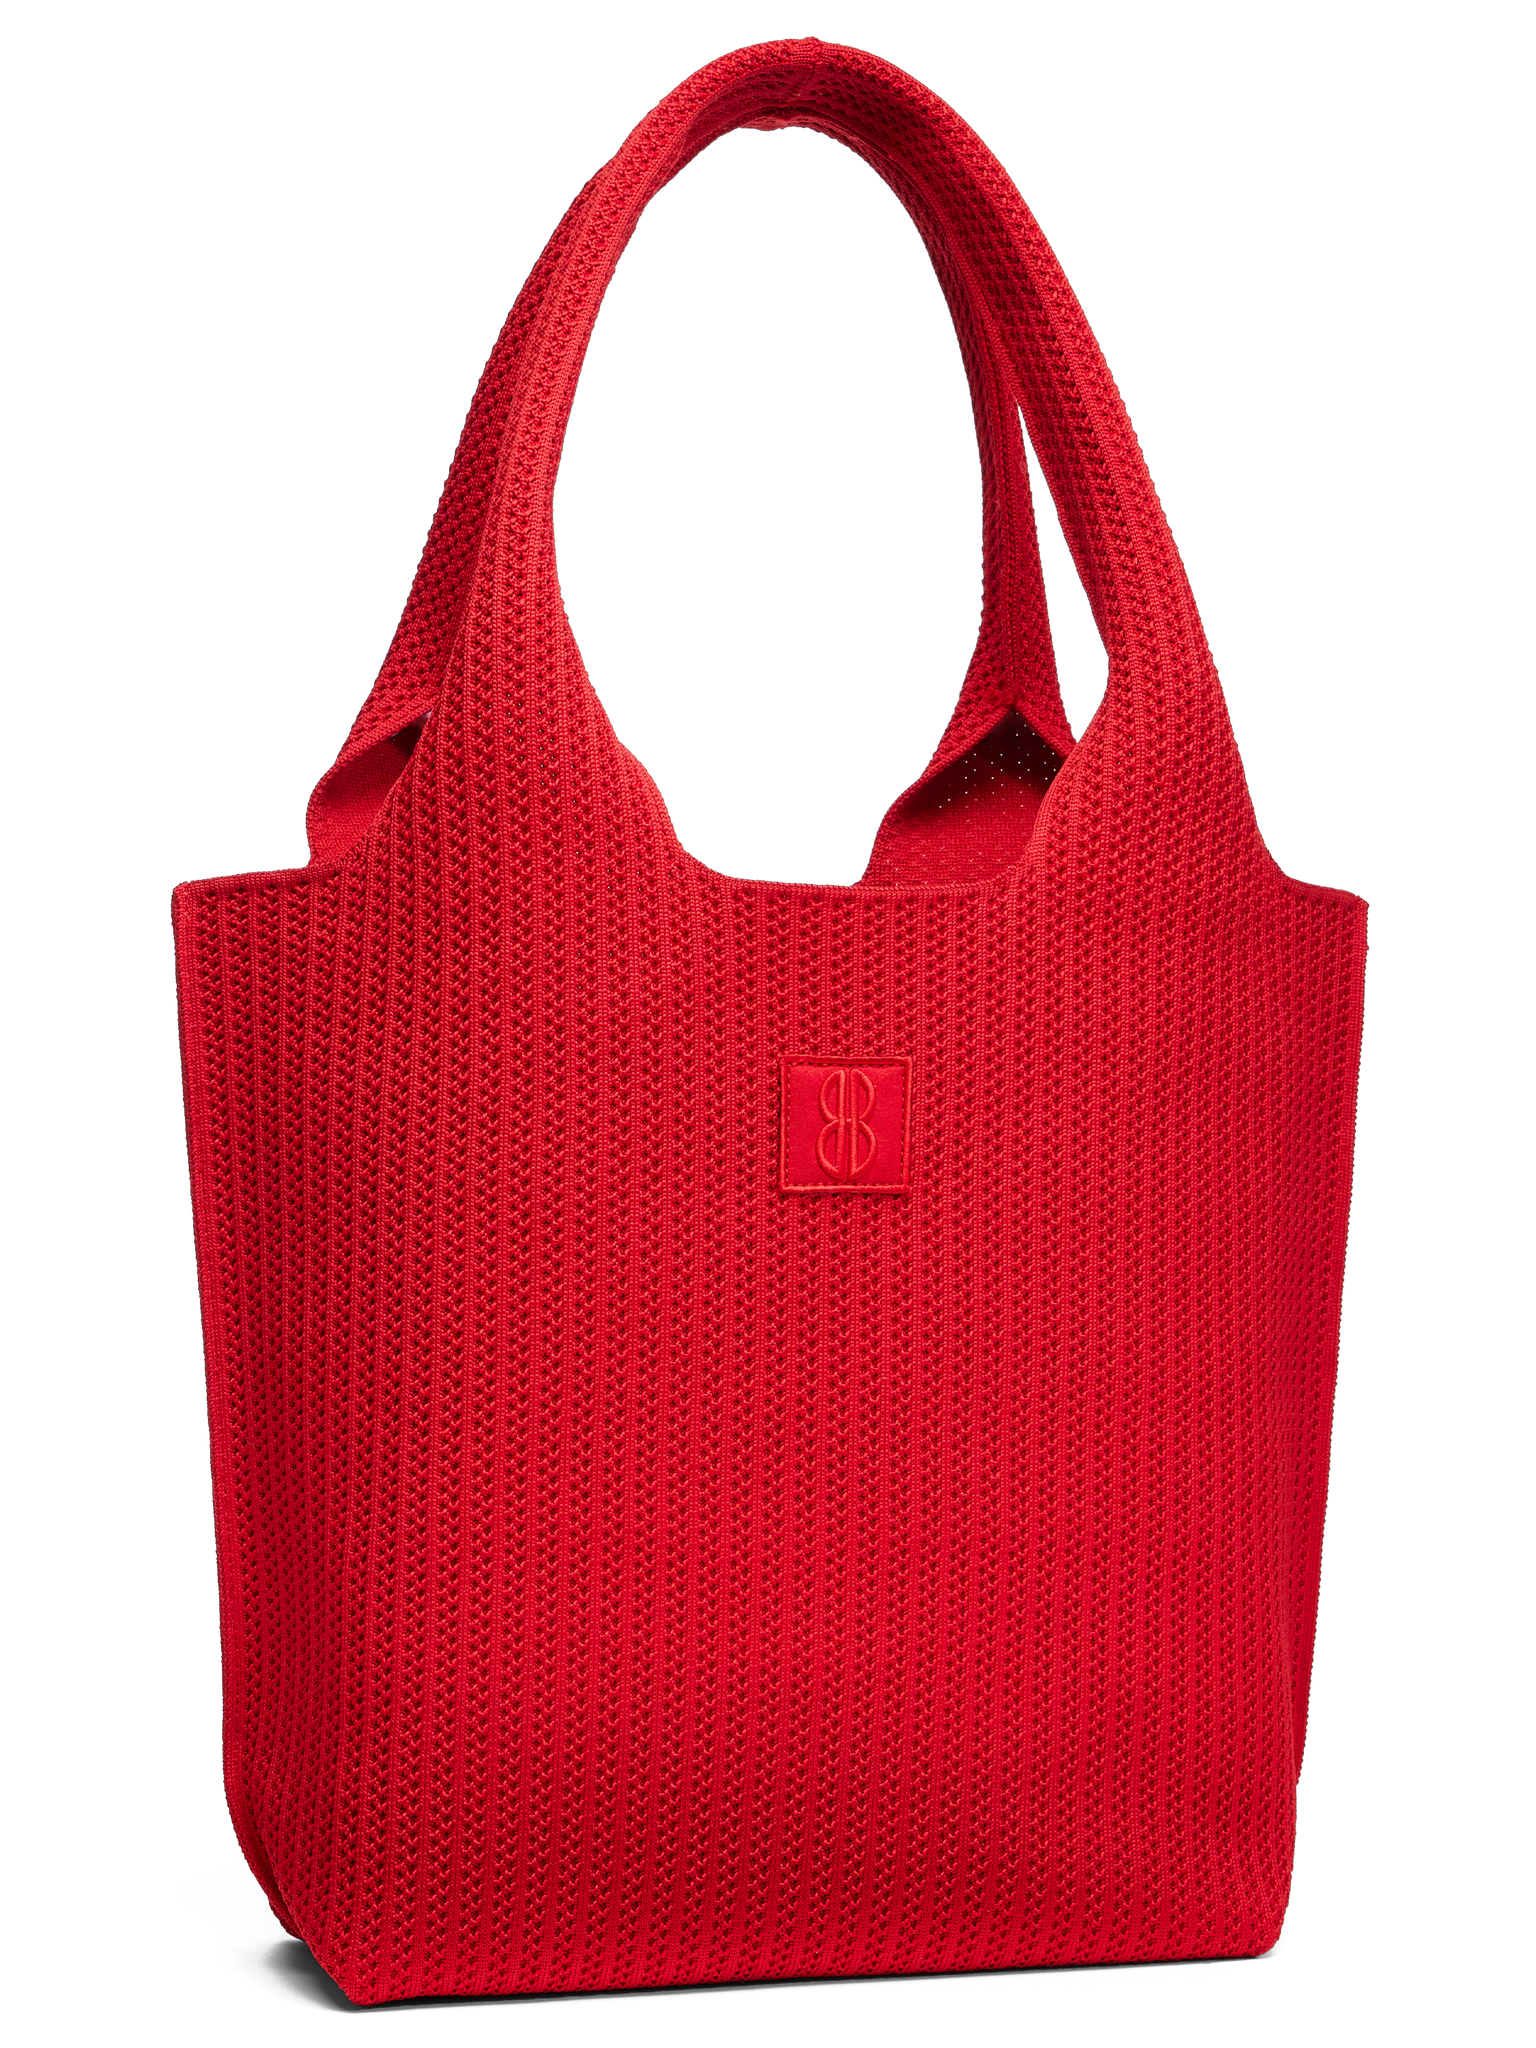 Sutton City Tote - Red Stripe -medium